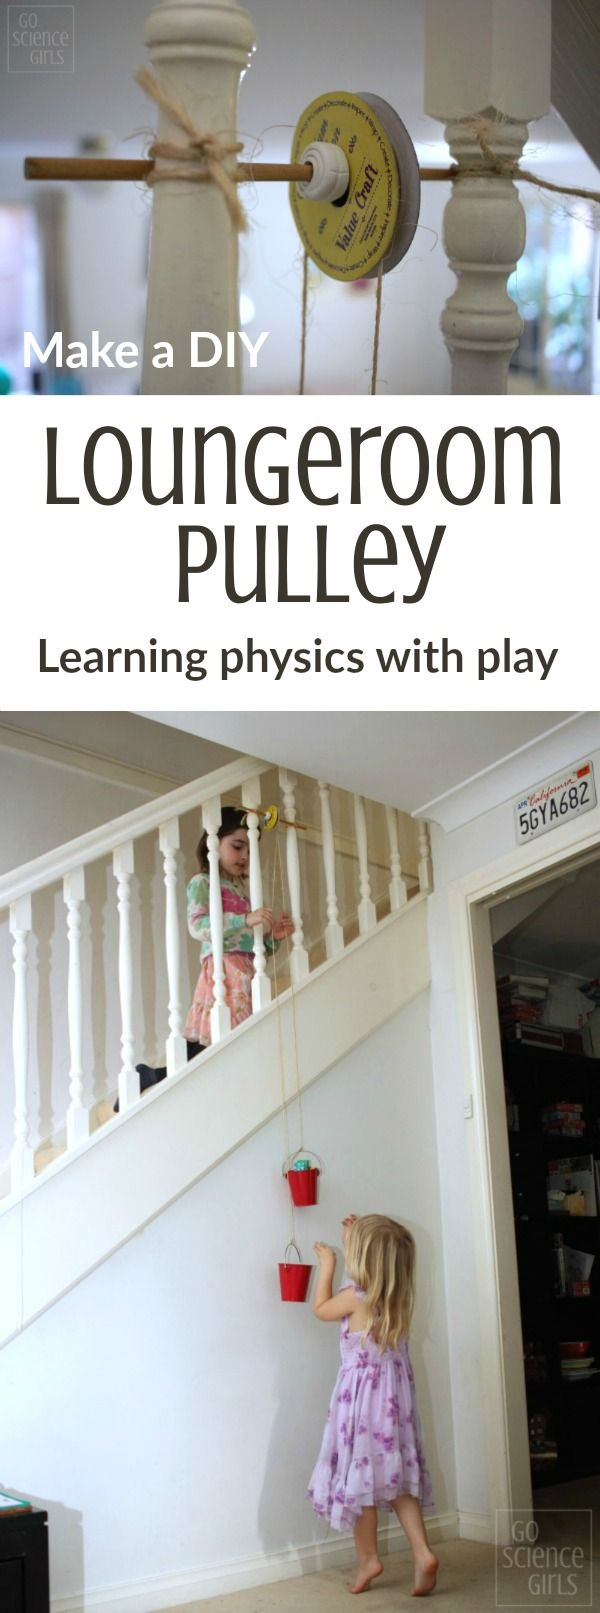 Make a DIY Loungeroom Pulley - fun way for kids to learn about physics and science through play